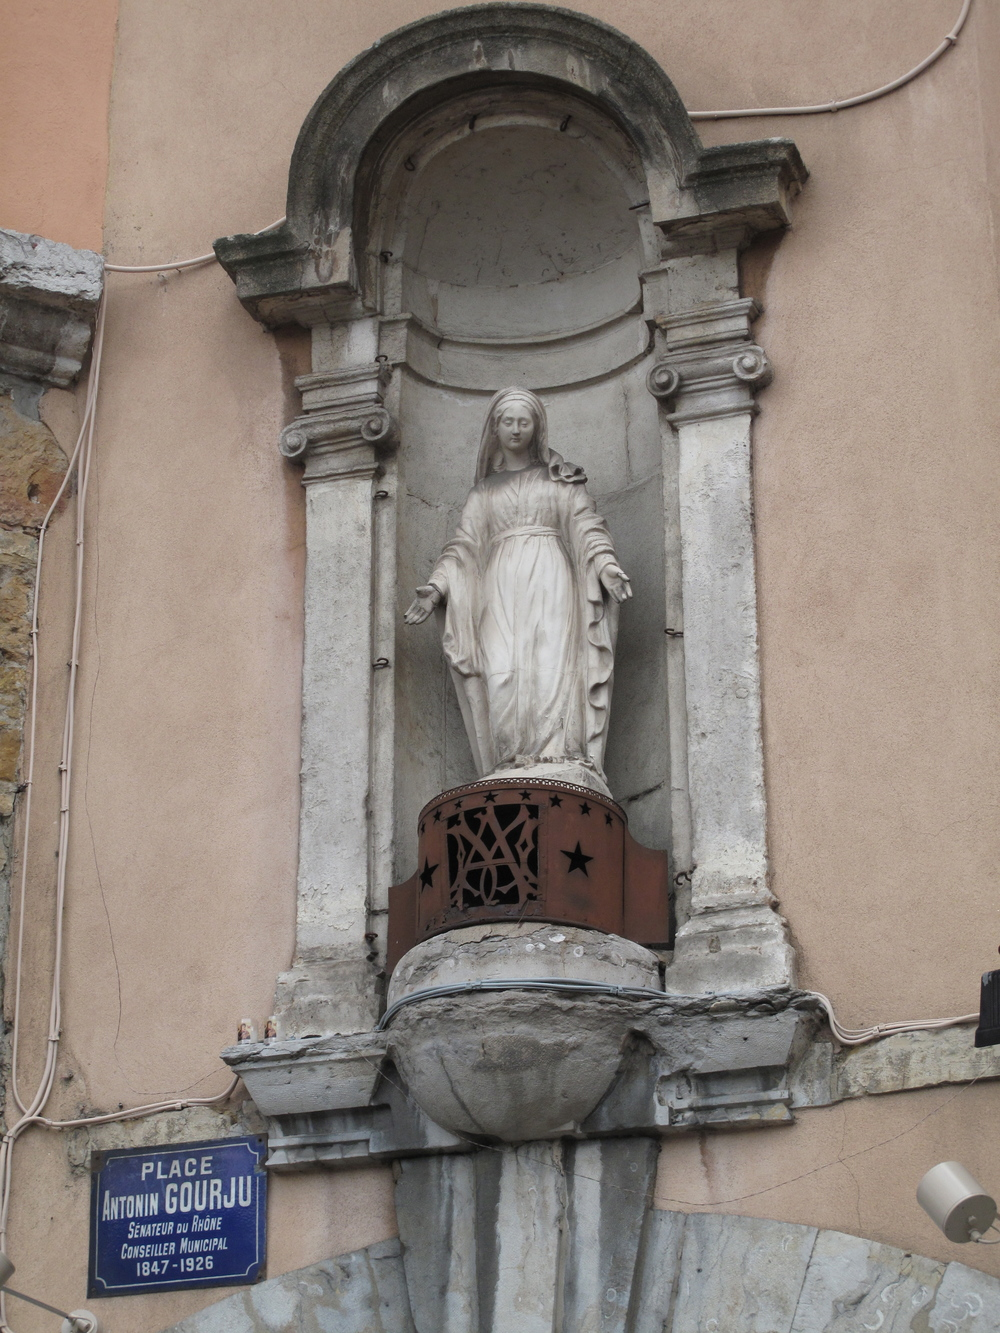 Place Antonin Gourju Lyon - figure of a saint on the wall